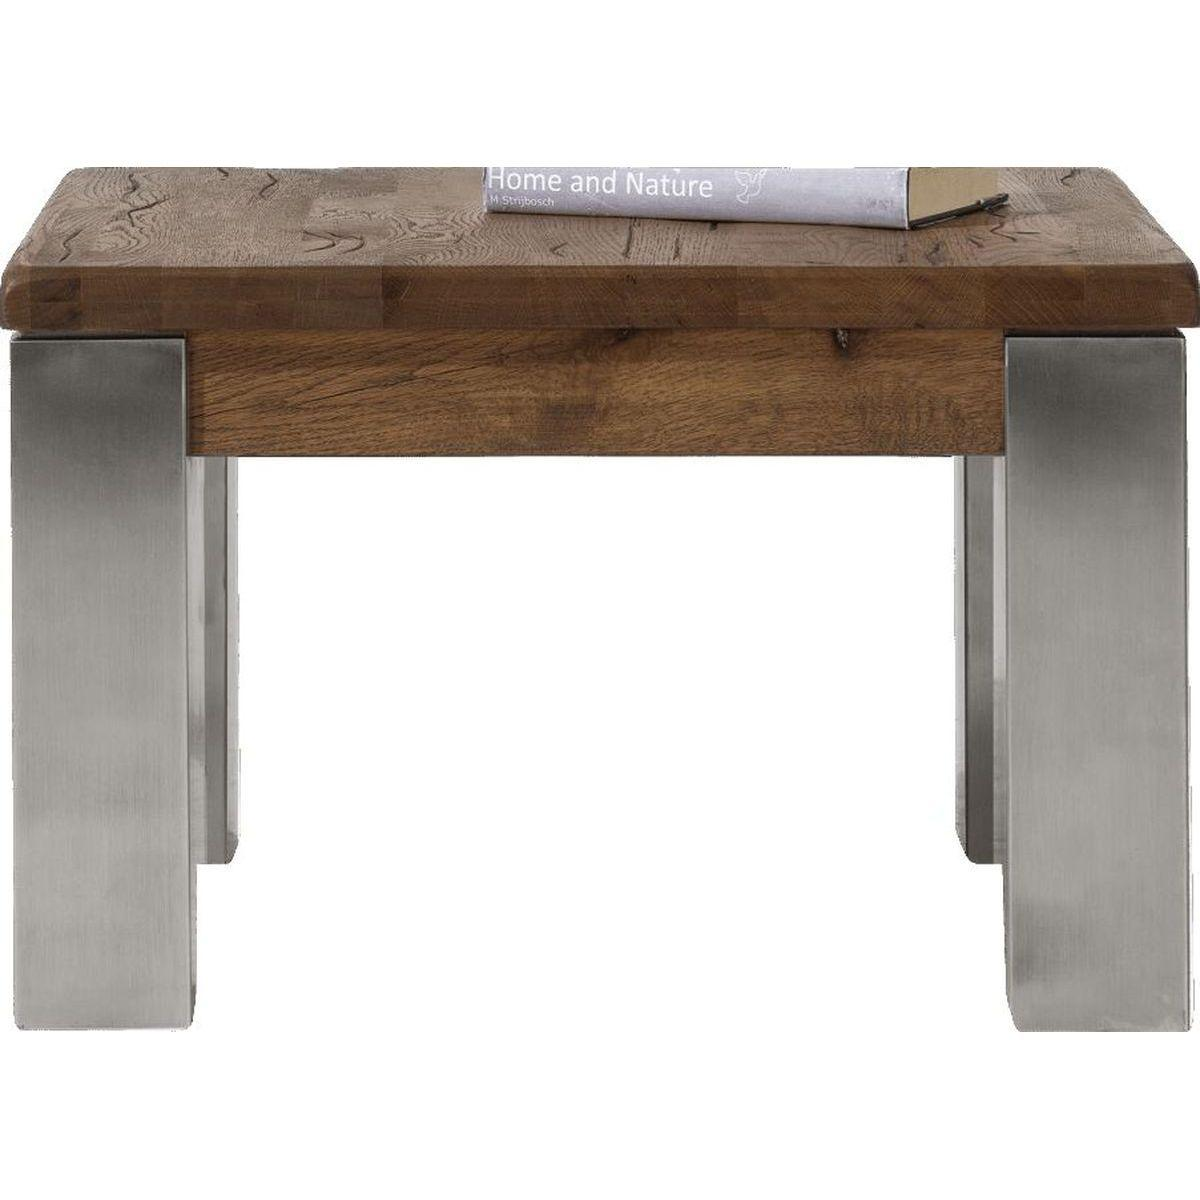 MASTERS by H&H Table d'appoint 60x60cm